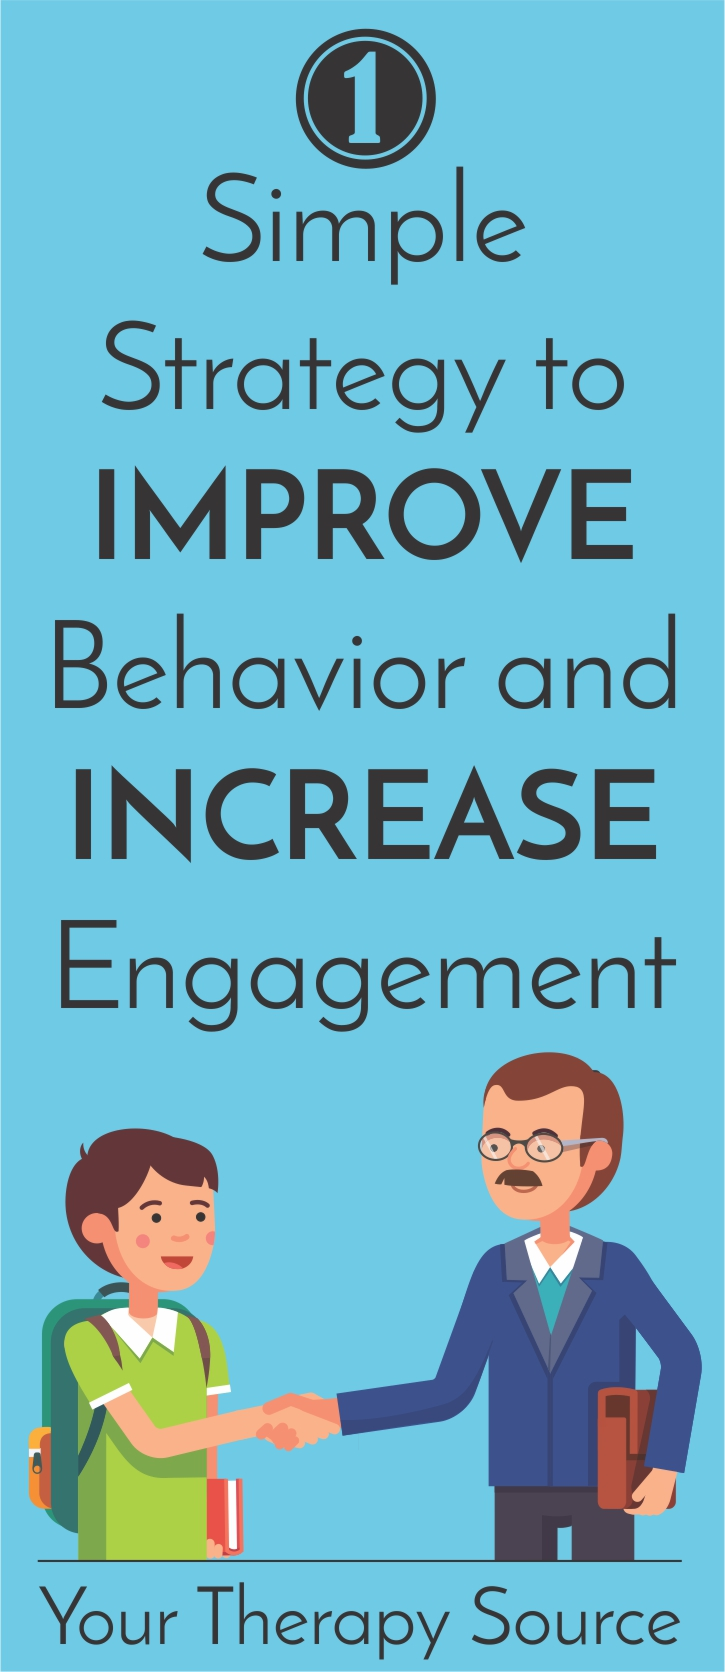 One Simple Strategy to Improve Behavior and Increase Engagement